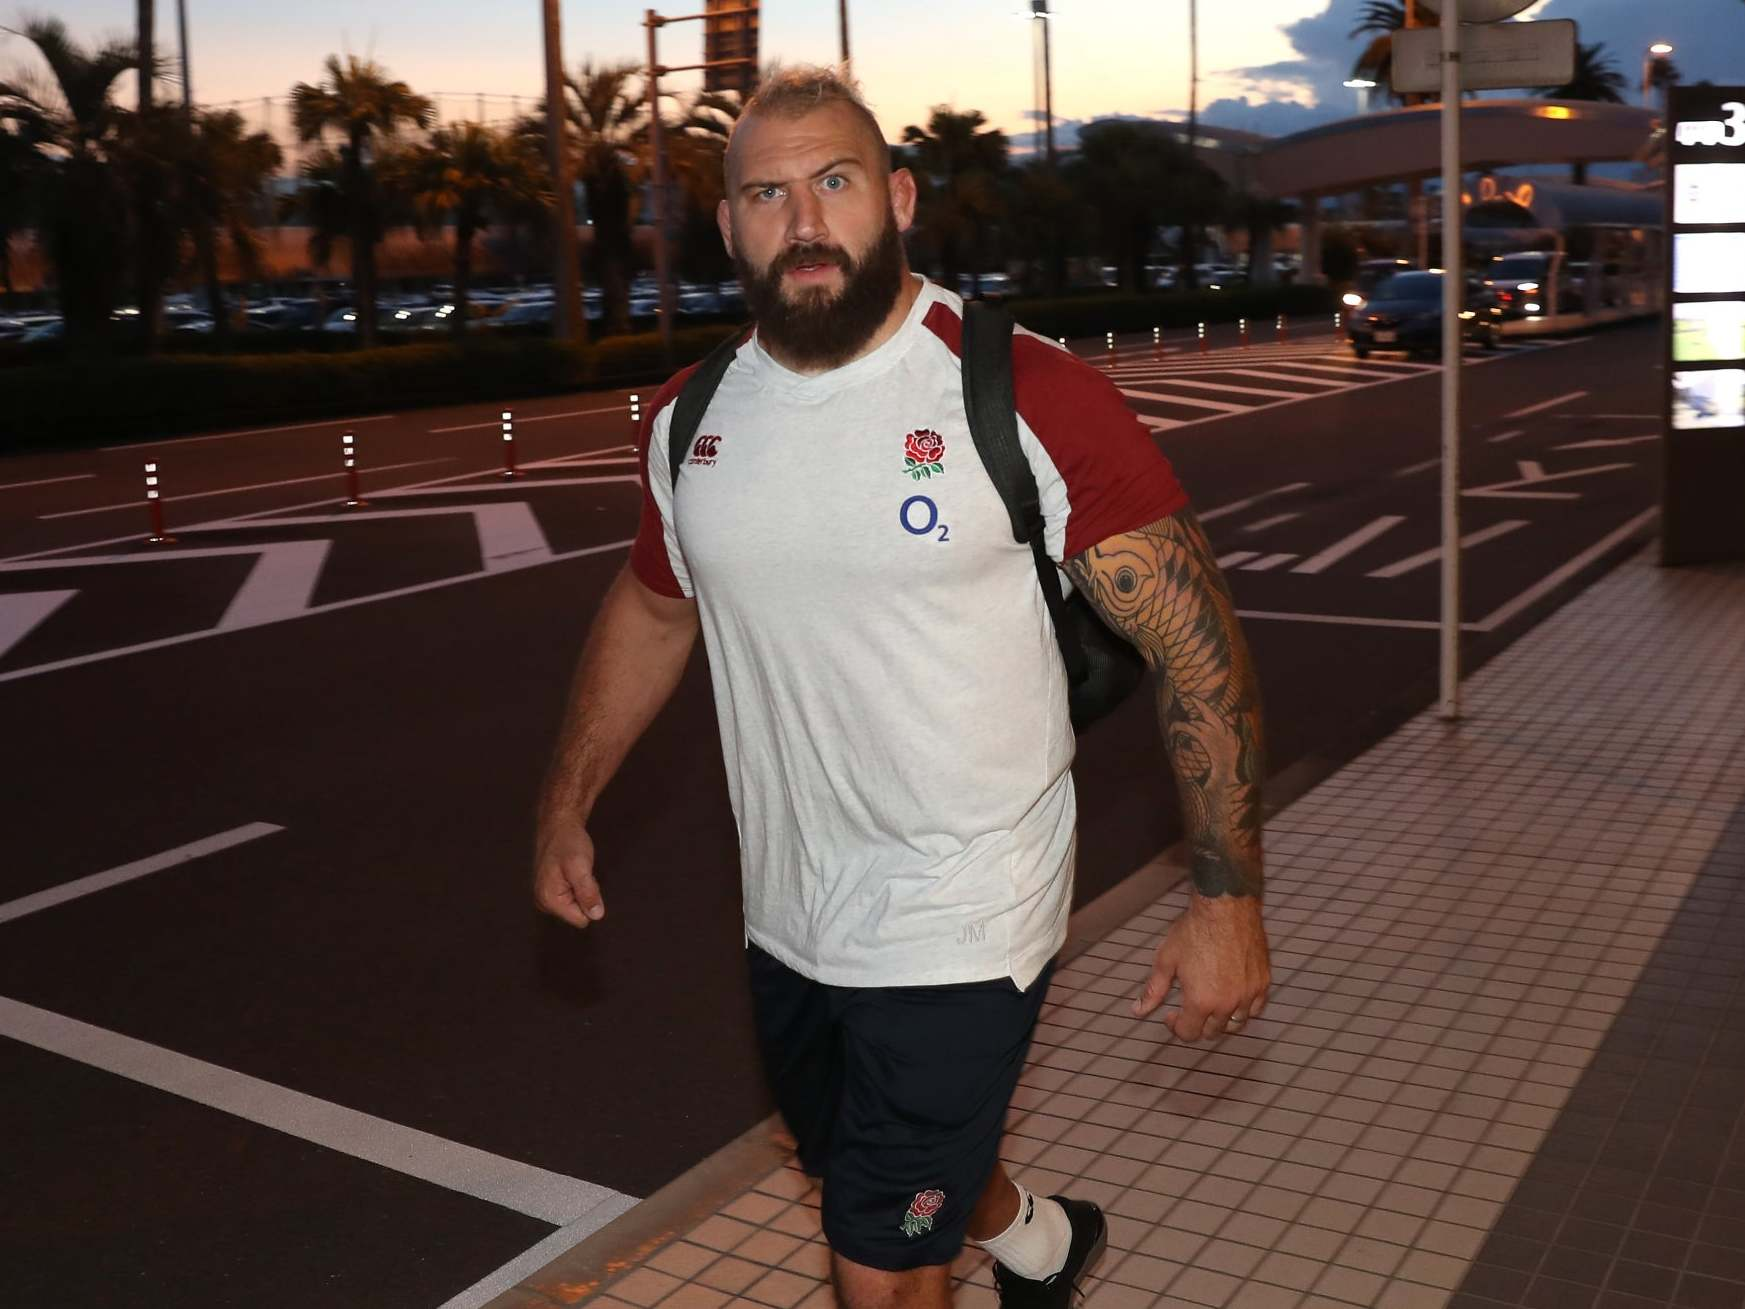 England team news: Joe Marler a late doubt for Rugby World Cup opener against Tonga